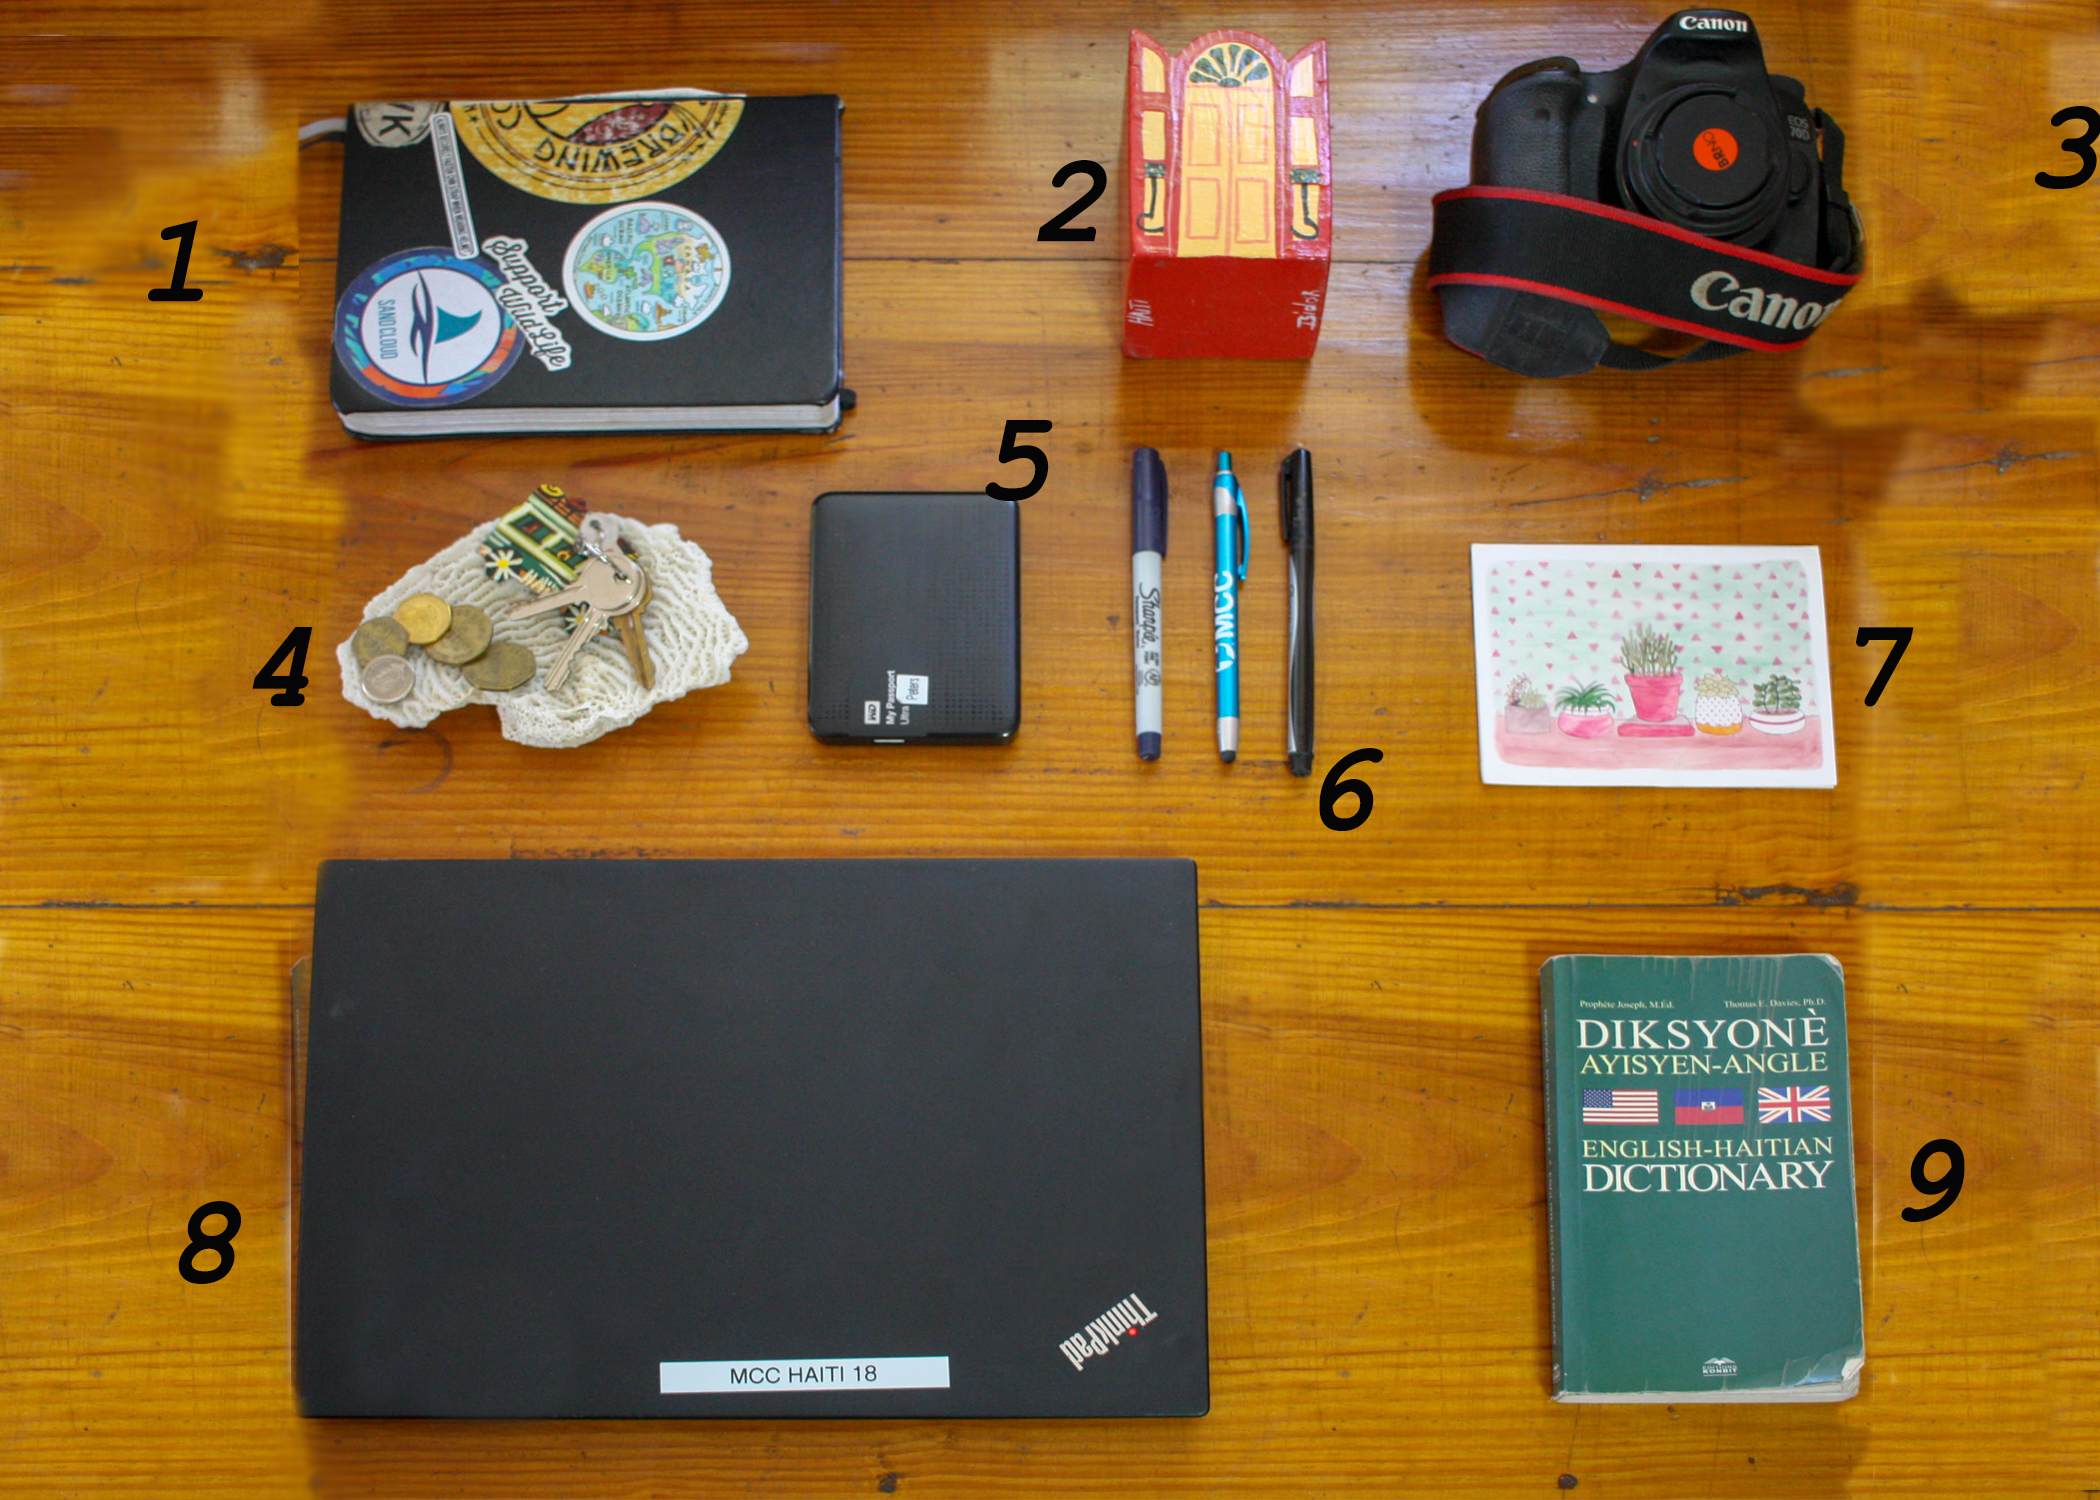 Anatomy of a SALTer's Desk   1. A traveller's notebook is essential for things like writing down people's names, that street with the store with the shirt you liked that you passed on the way to the grocery store, and words you see that you want learn in your new language.  2. An artisanal pen cup adds local color and is a great place to keep your pens.  3. As a photographer, a camera can come in handy sometimes.  4. A coral? Found on the beach makes a great place to hold change for the tap tap (you'll learn about those in the article), and house keys.  5. If you have a lot of files, an external hardrive is key. It's also great for keeping things like all nine seasons of the Office on it. I don't know.  6. Multiple writing utensils, peak the MCC paraphernalia.  7. A letter from home.  8. MCC issued laptop! For working in the office and also watching The Office  9. A trusty dictionary to help maneuver language troubles.